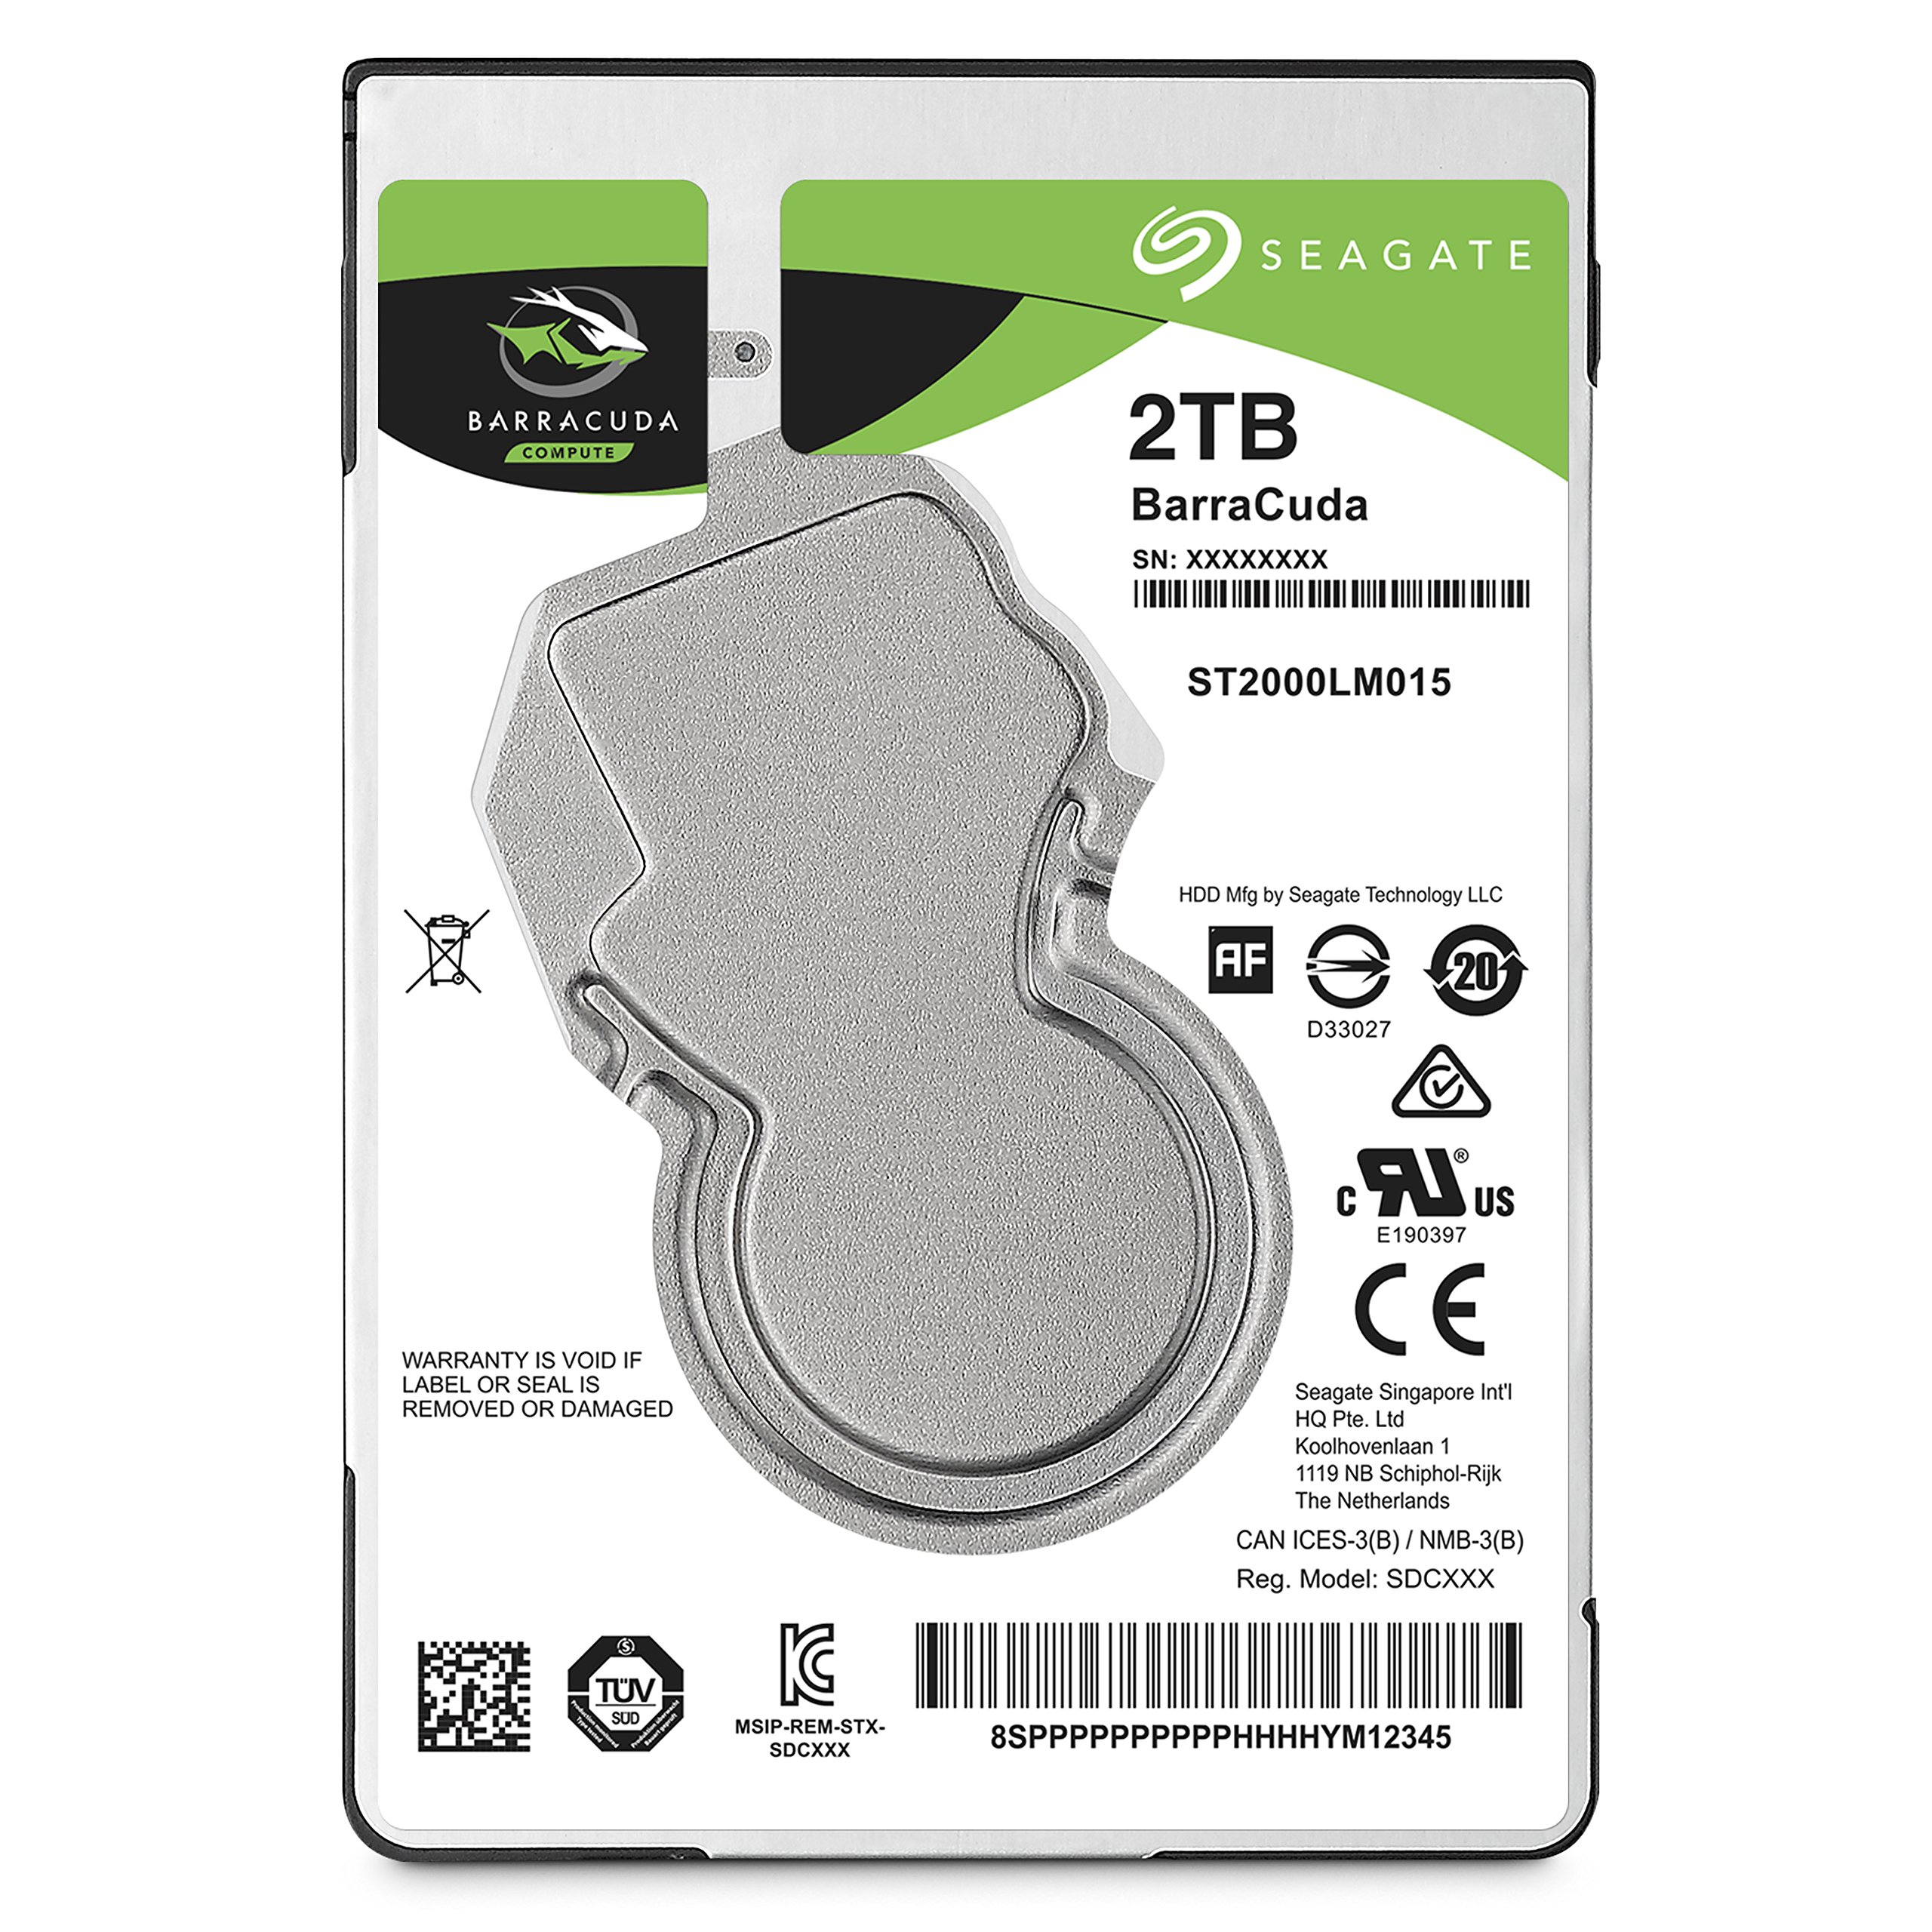 Seagate 2TB BarraCuda SATA 6Gb/s 128MB Cache 2.5-Inch 7mm Internal Hard Drive (ST2000LM015) by Seagate